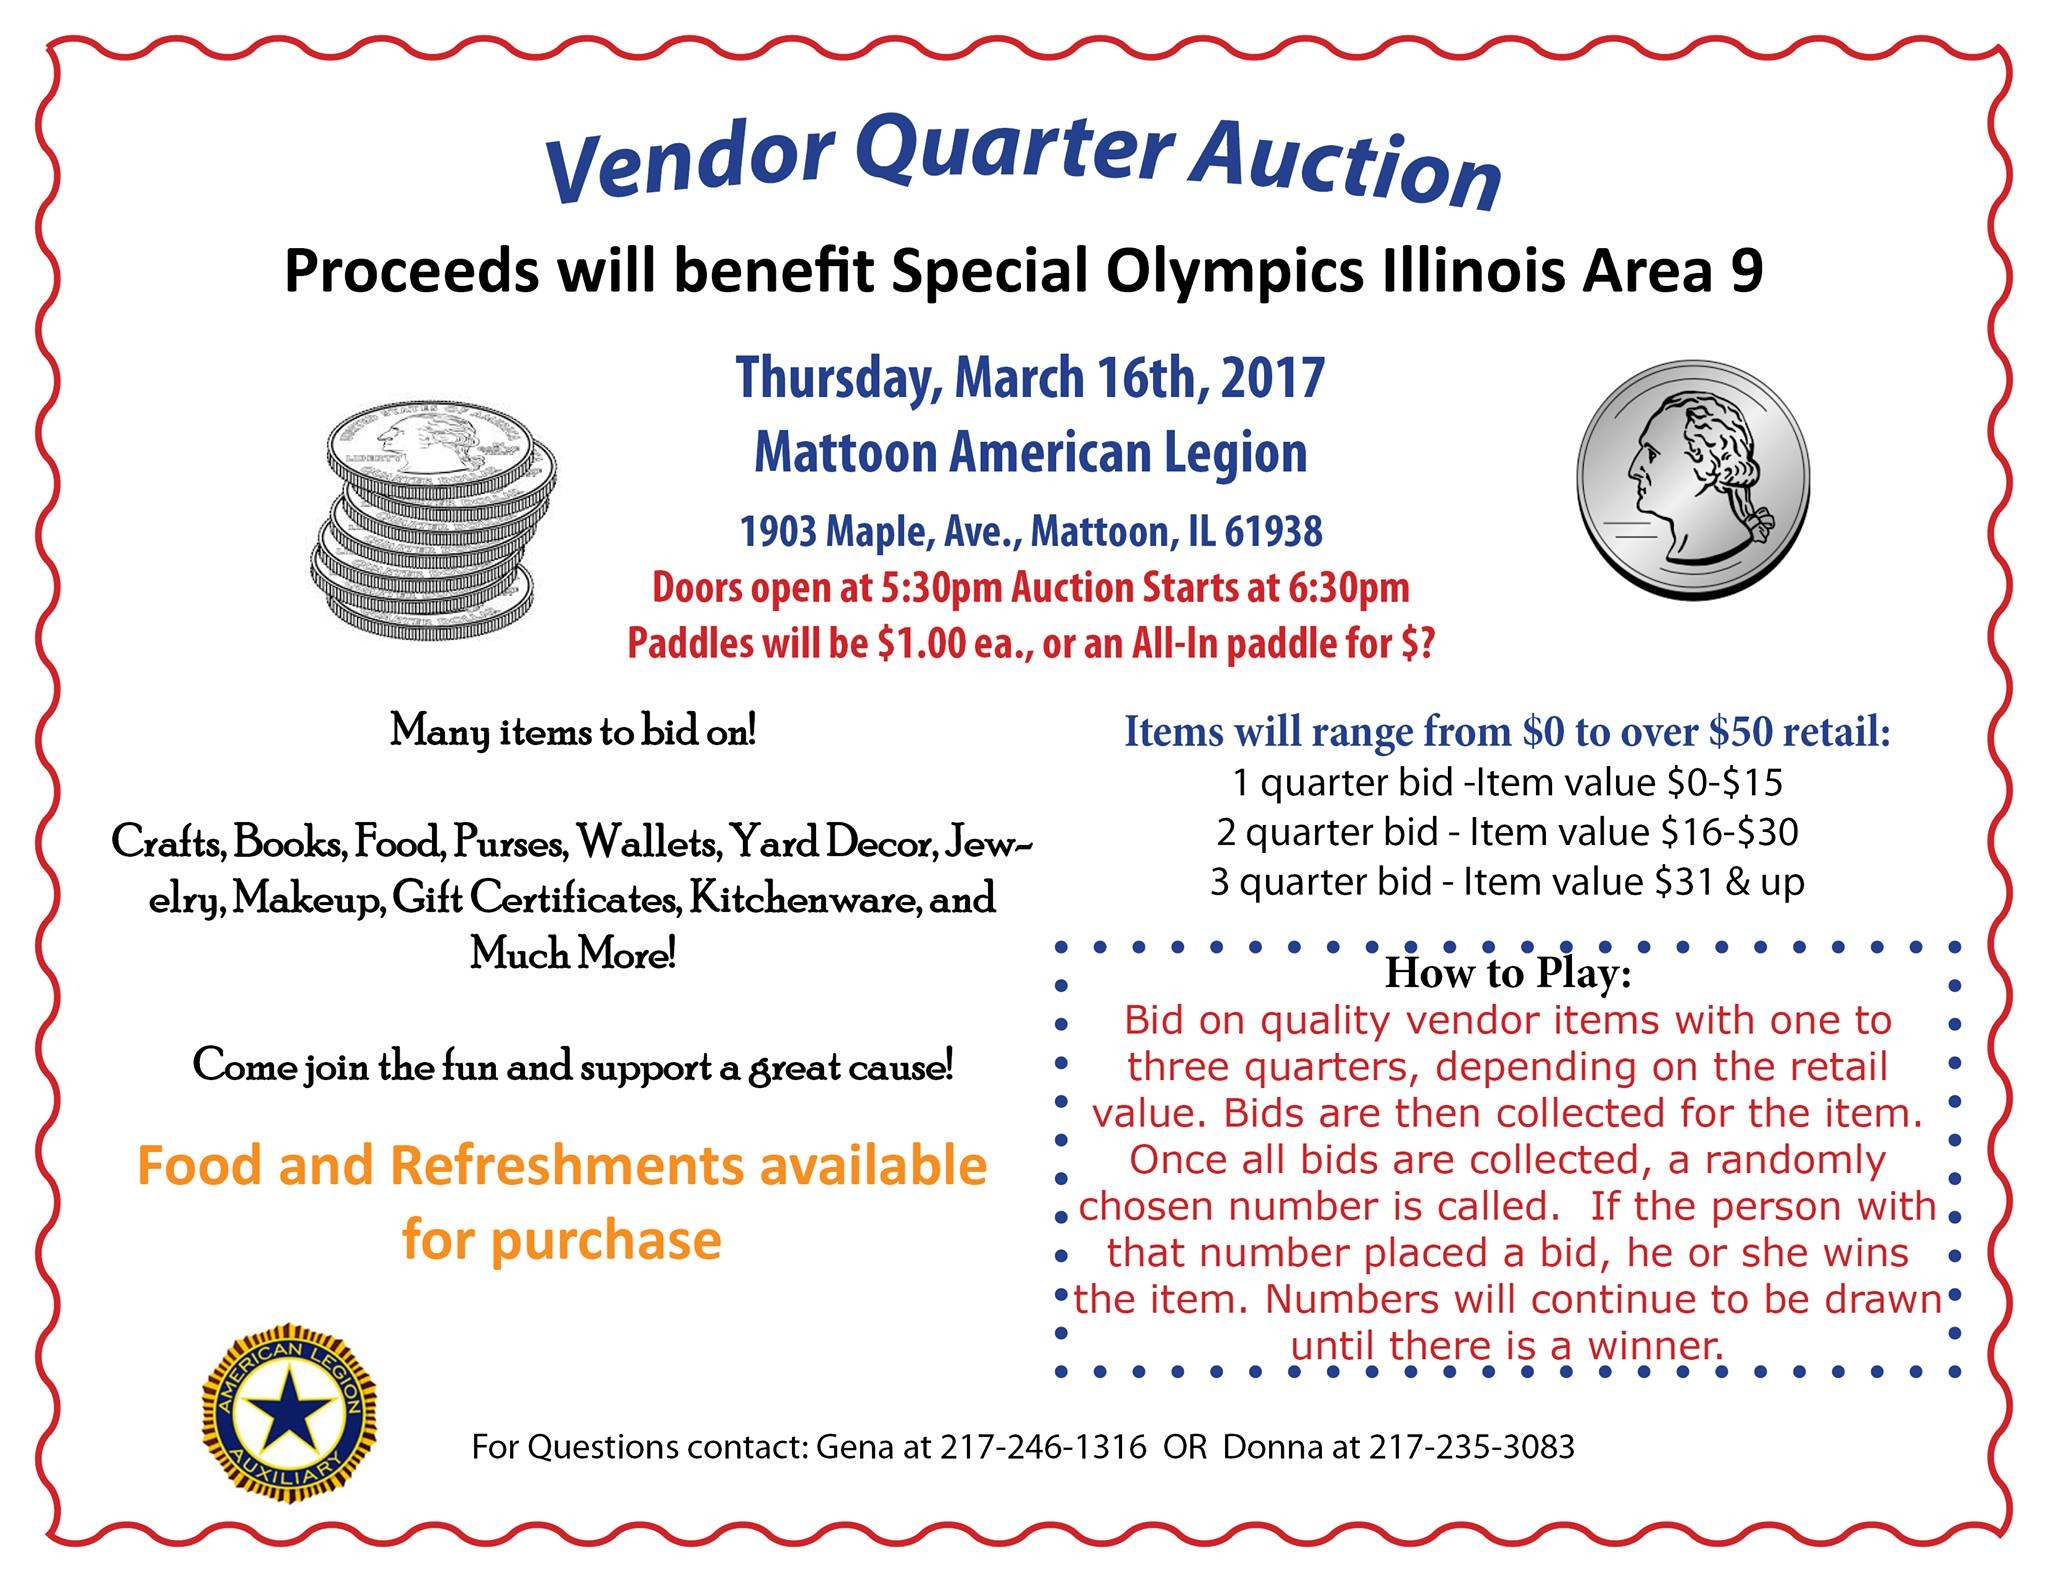 Quarter Auction to benefit Special Olympics